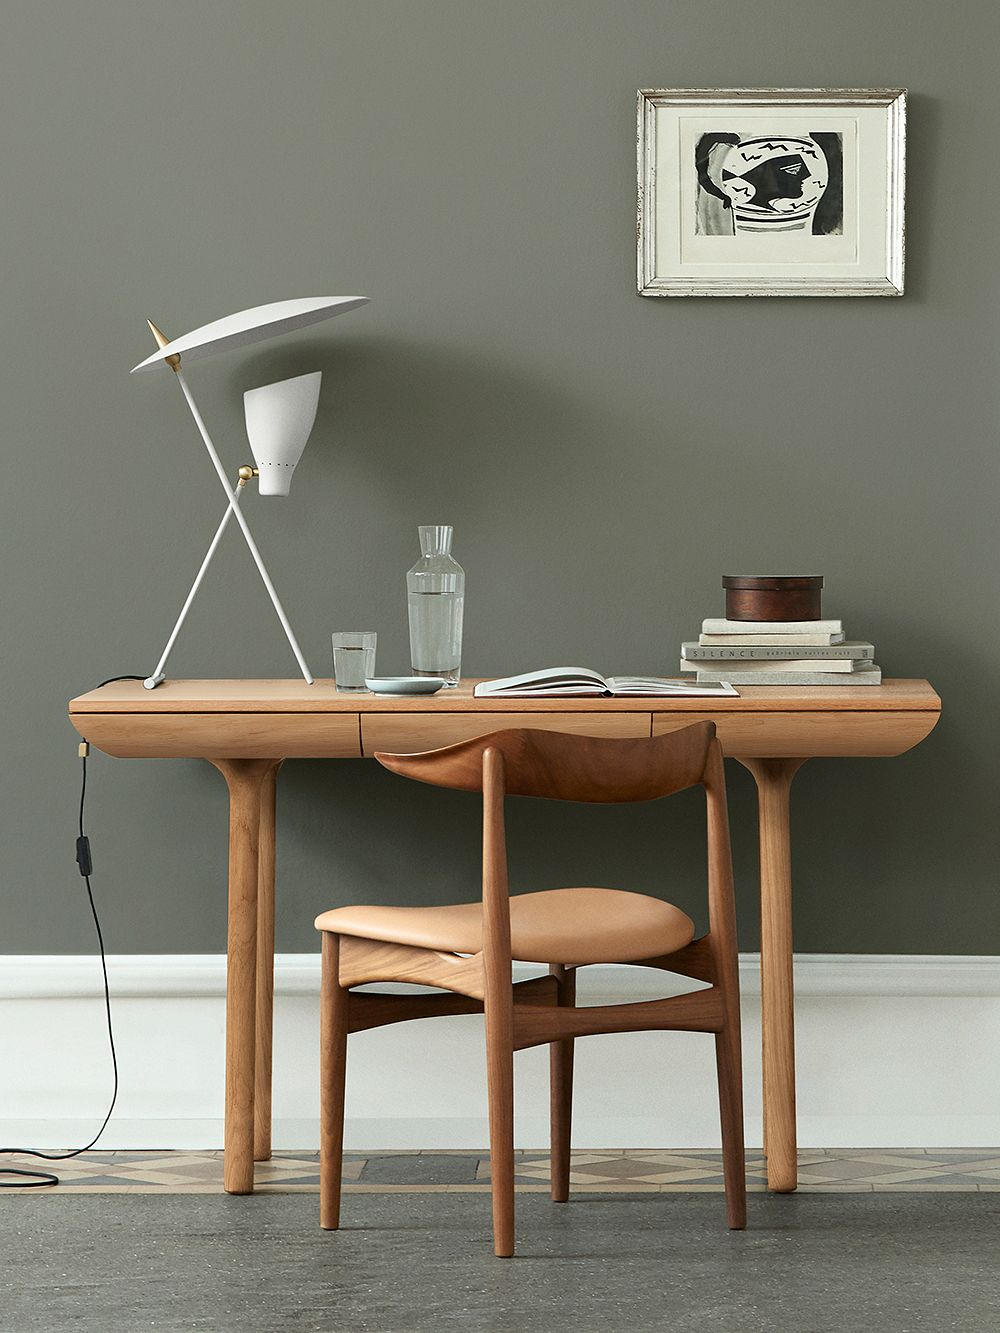 Warm Nordic Silhouette table lamp, white